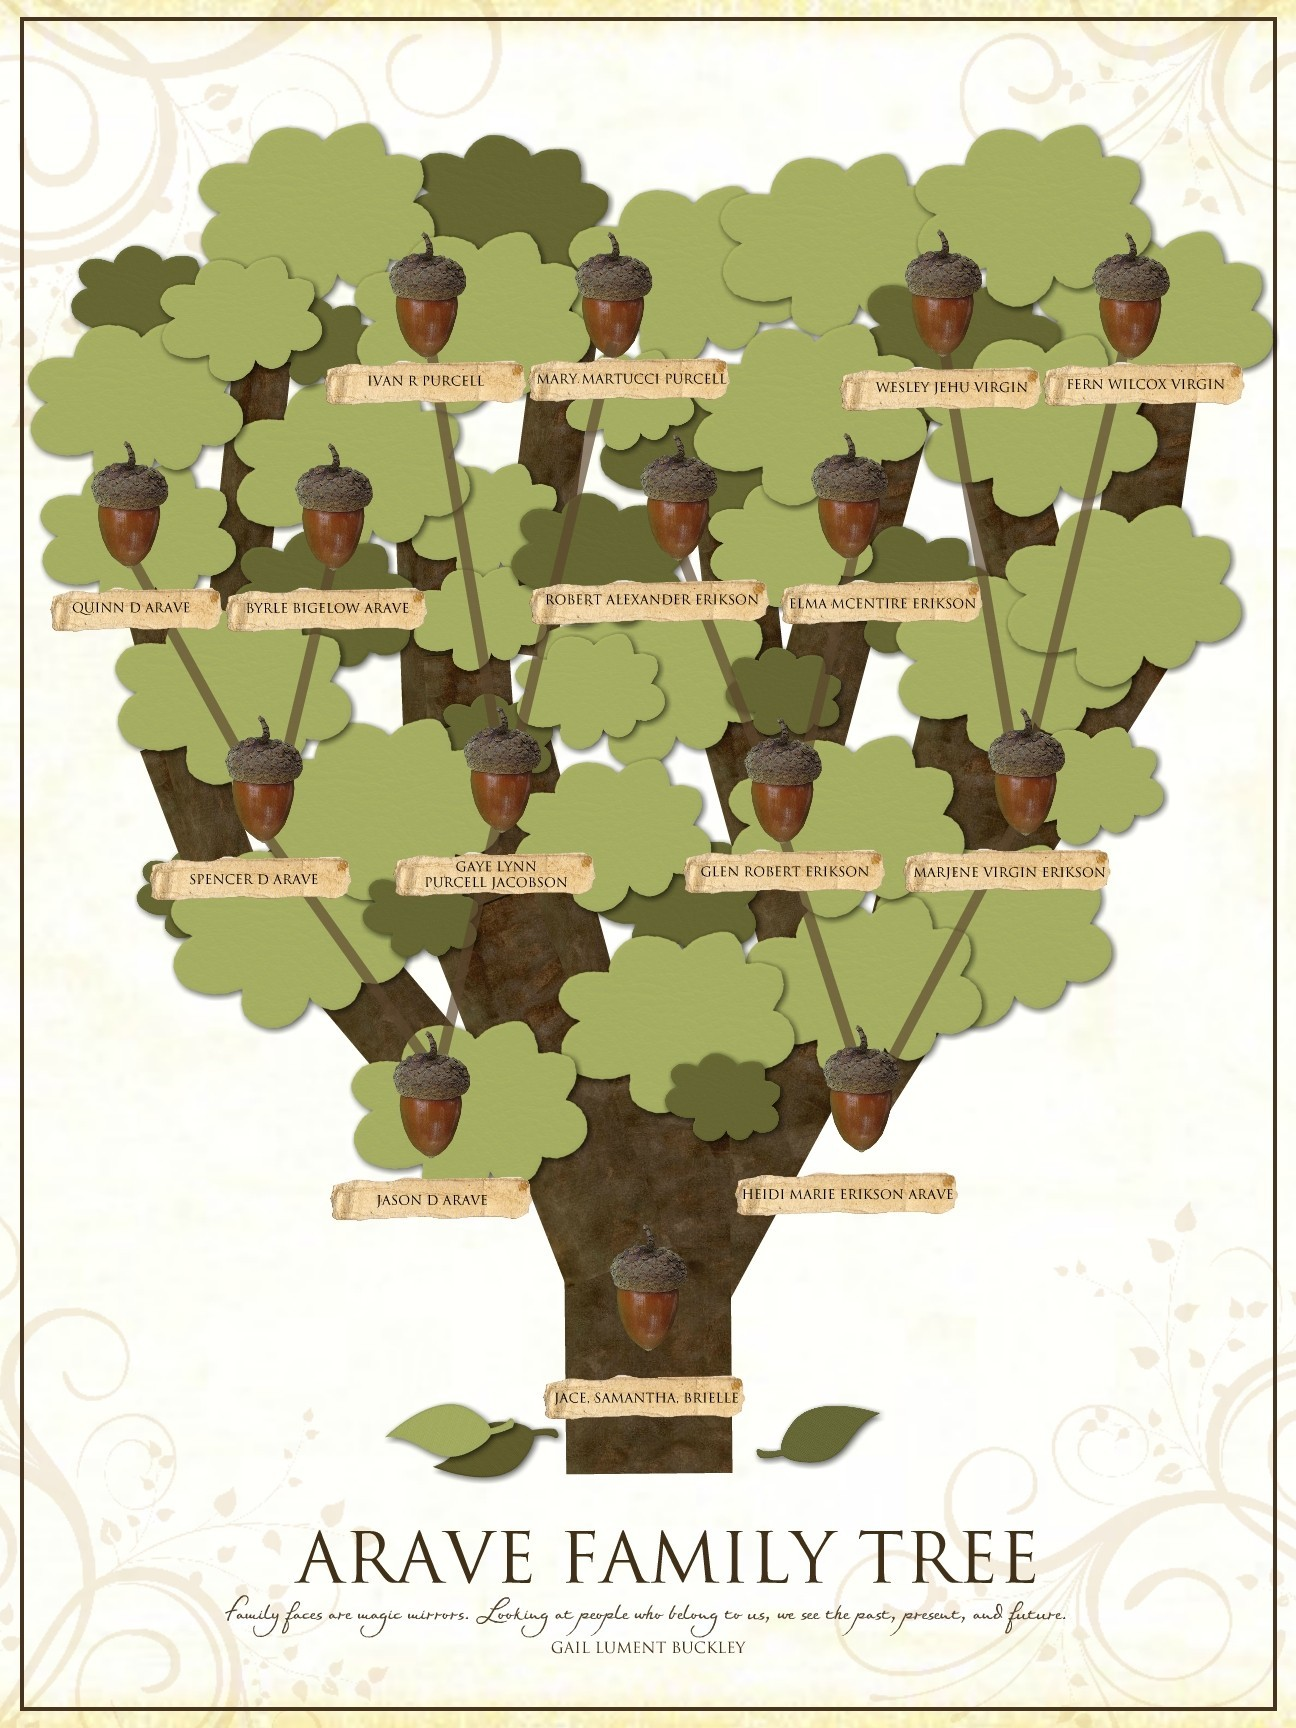 family tree magnet board poster 18 x 24 poster 1 page s designed by heidi arave date added 09 01 2009 description keywords home family tree heidi family history decor homedecor arave i understand that any projects i create with this template will